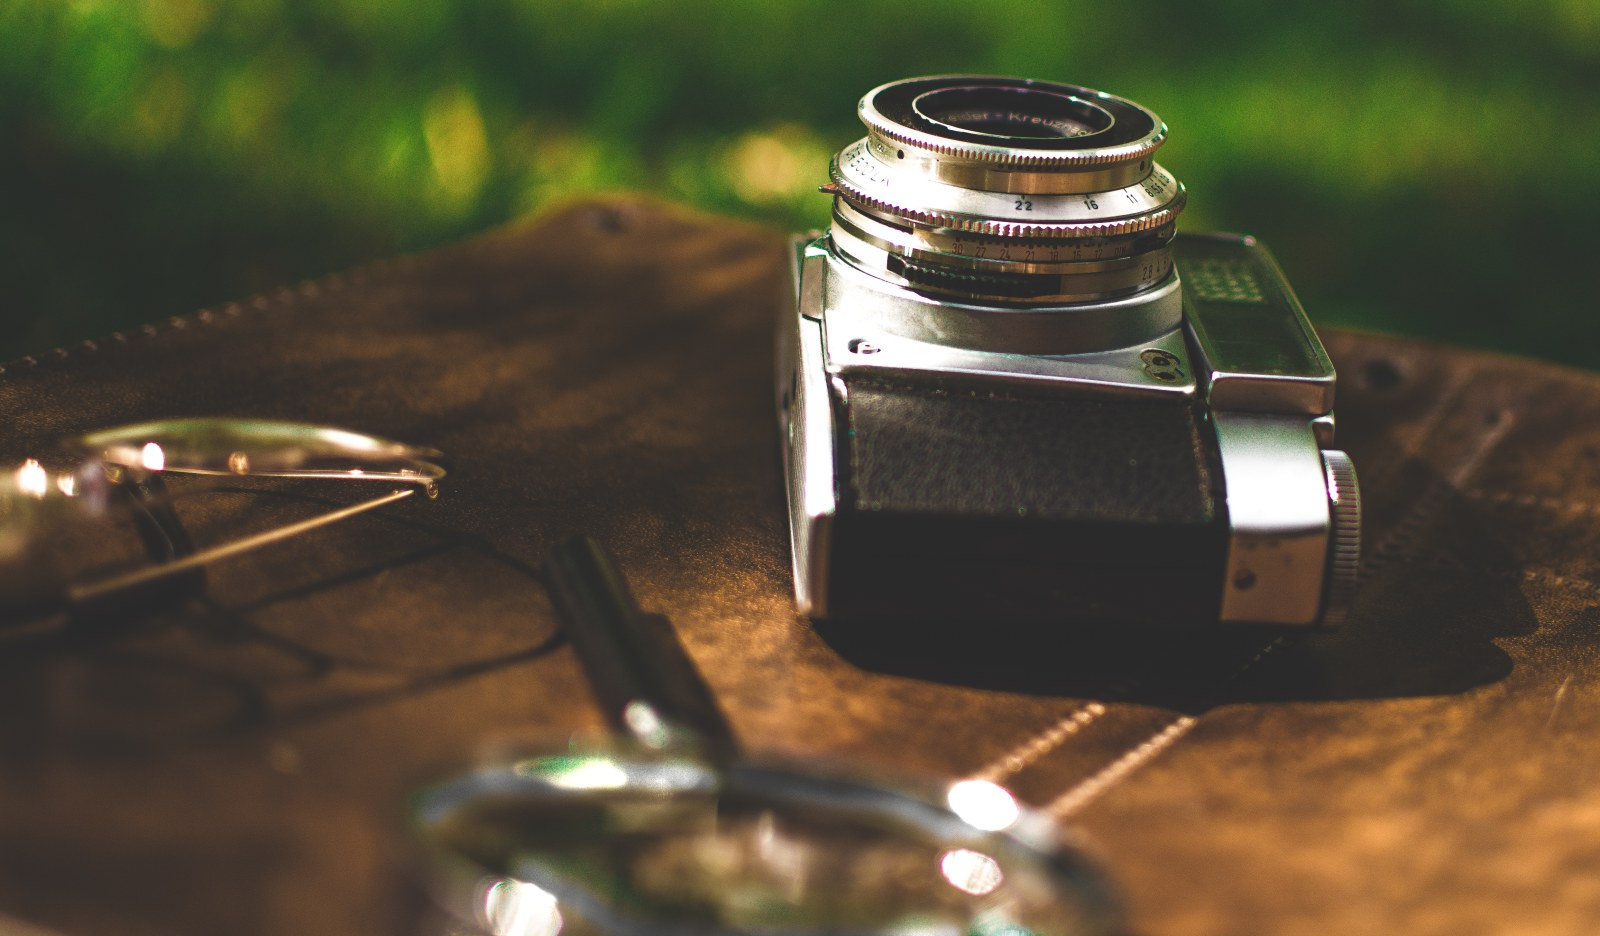 How to Prepare Images for Web Use